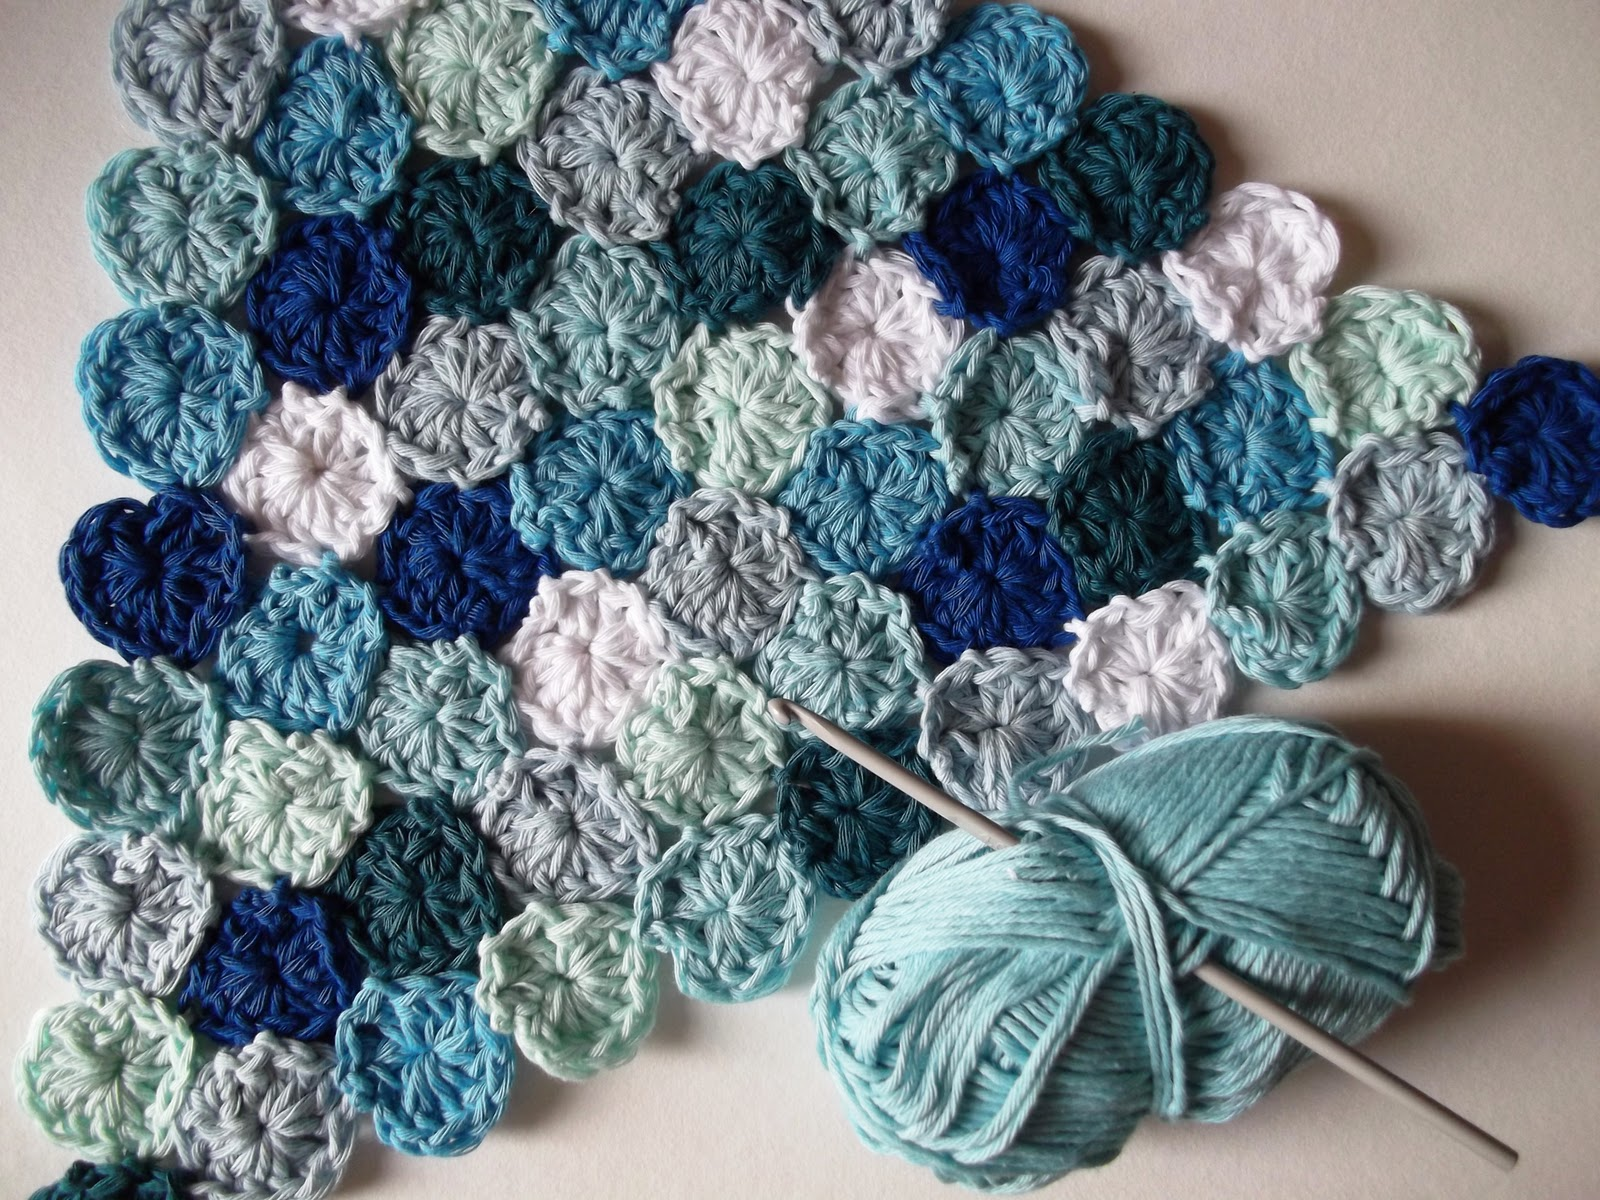 JuliaCrossland: How to Crochet Sea Pennies